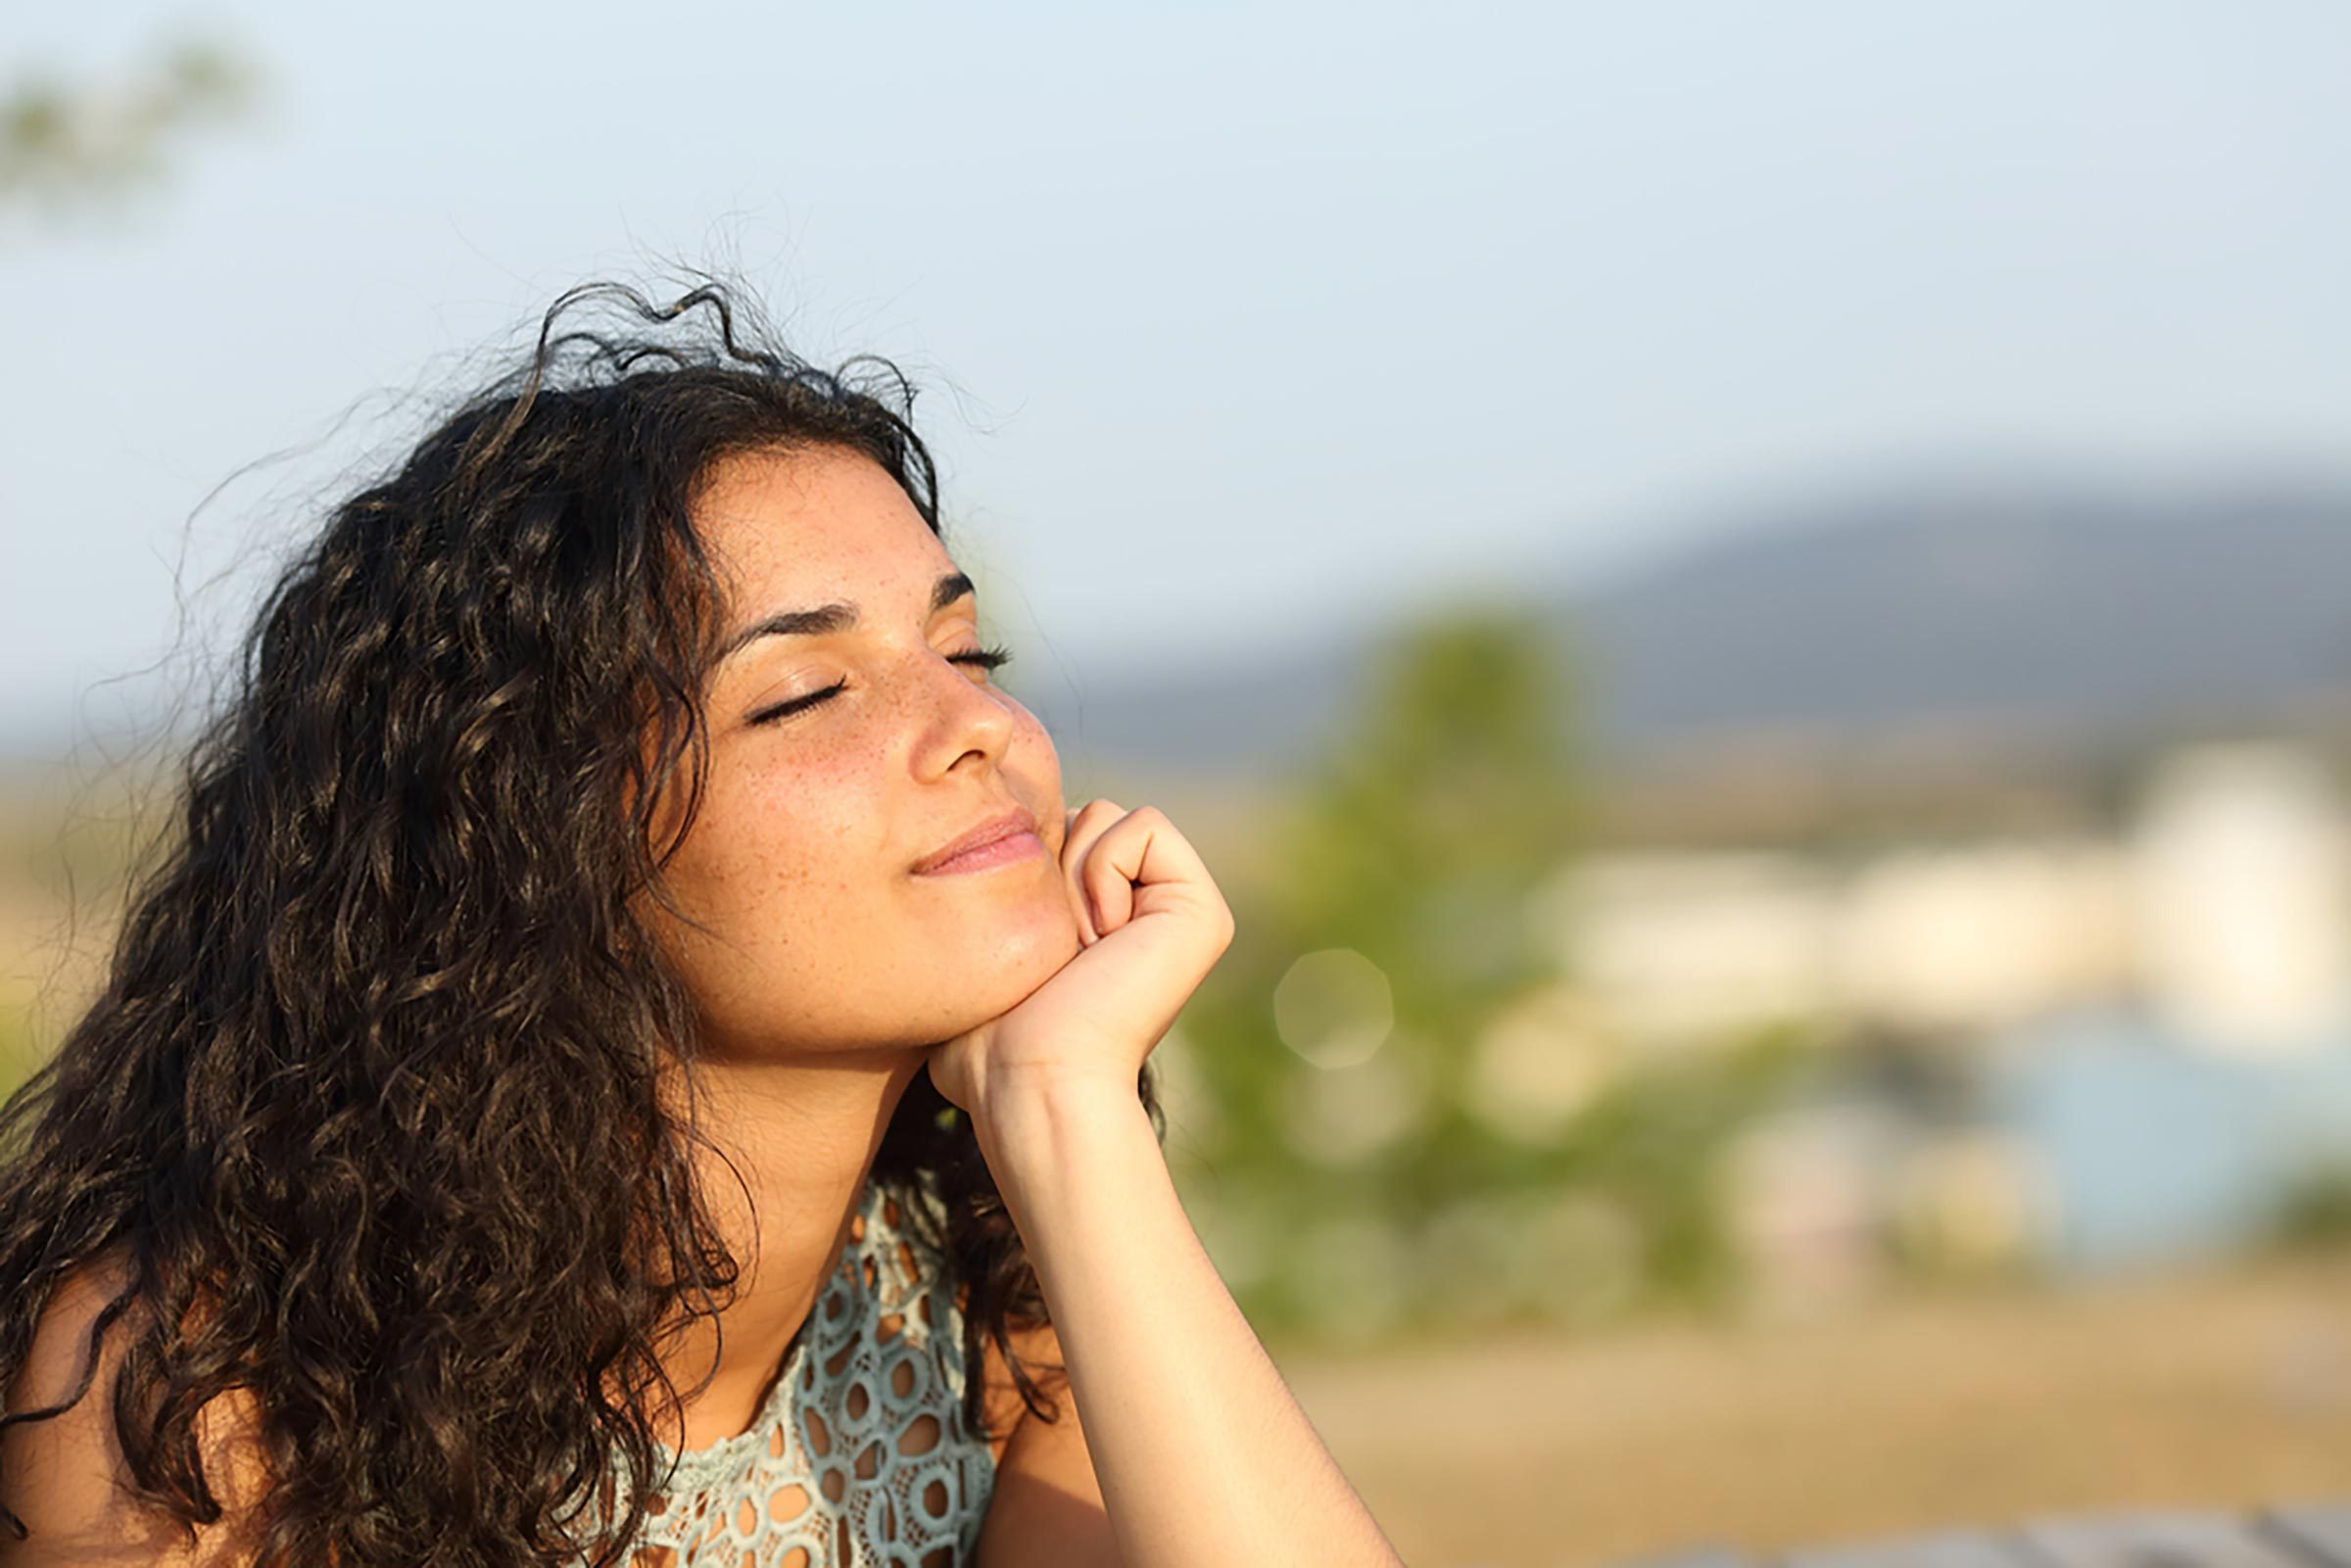 woman closes eyes in sun